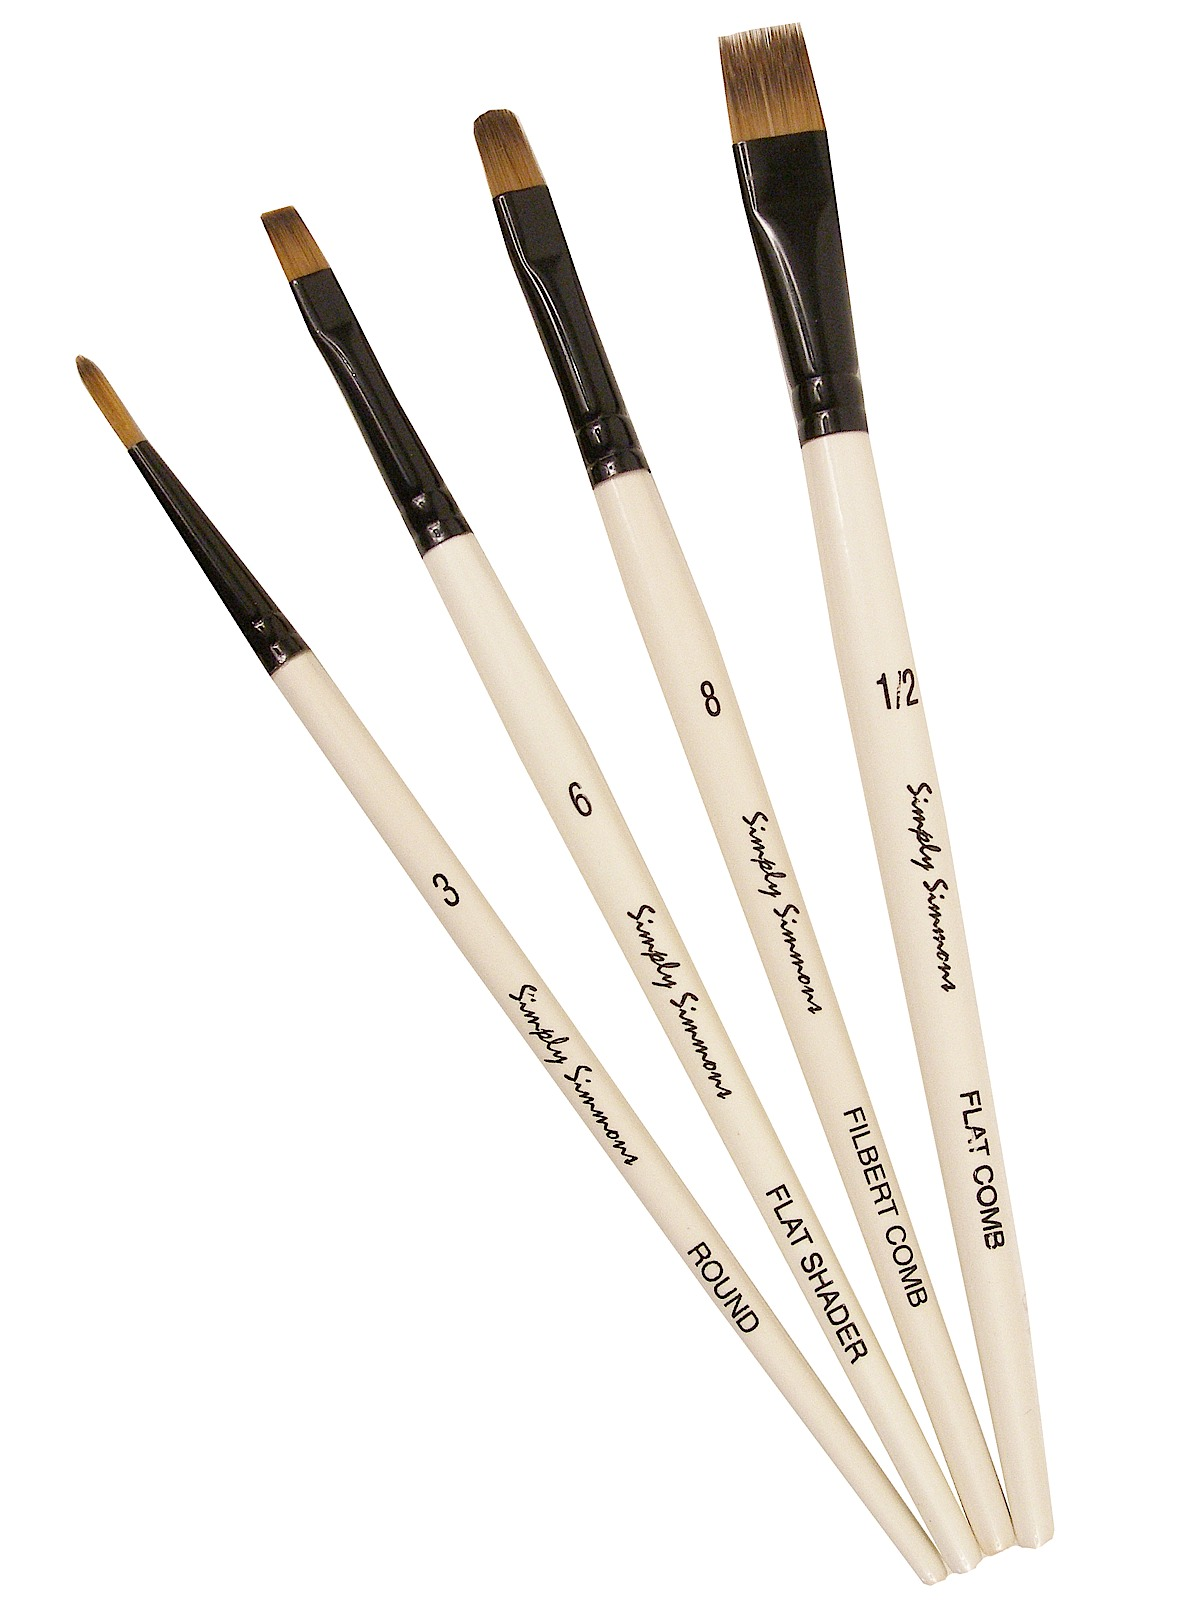 Simply Simmons Short Handle Brush Sets